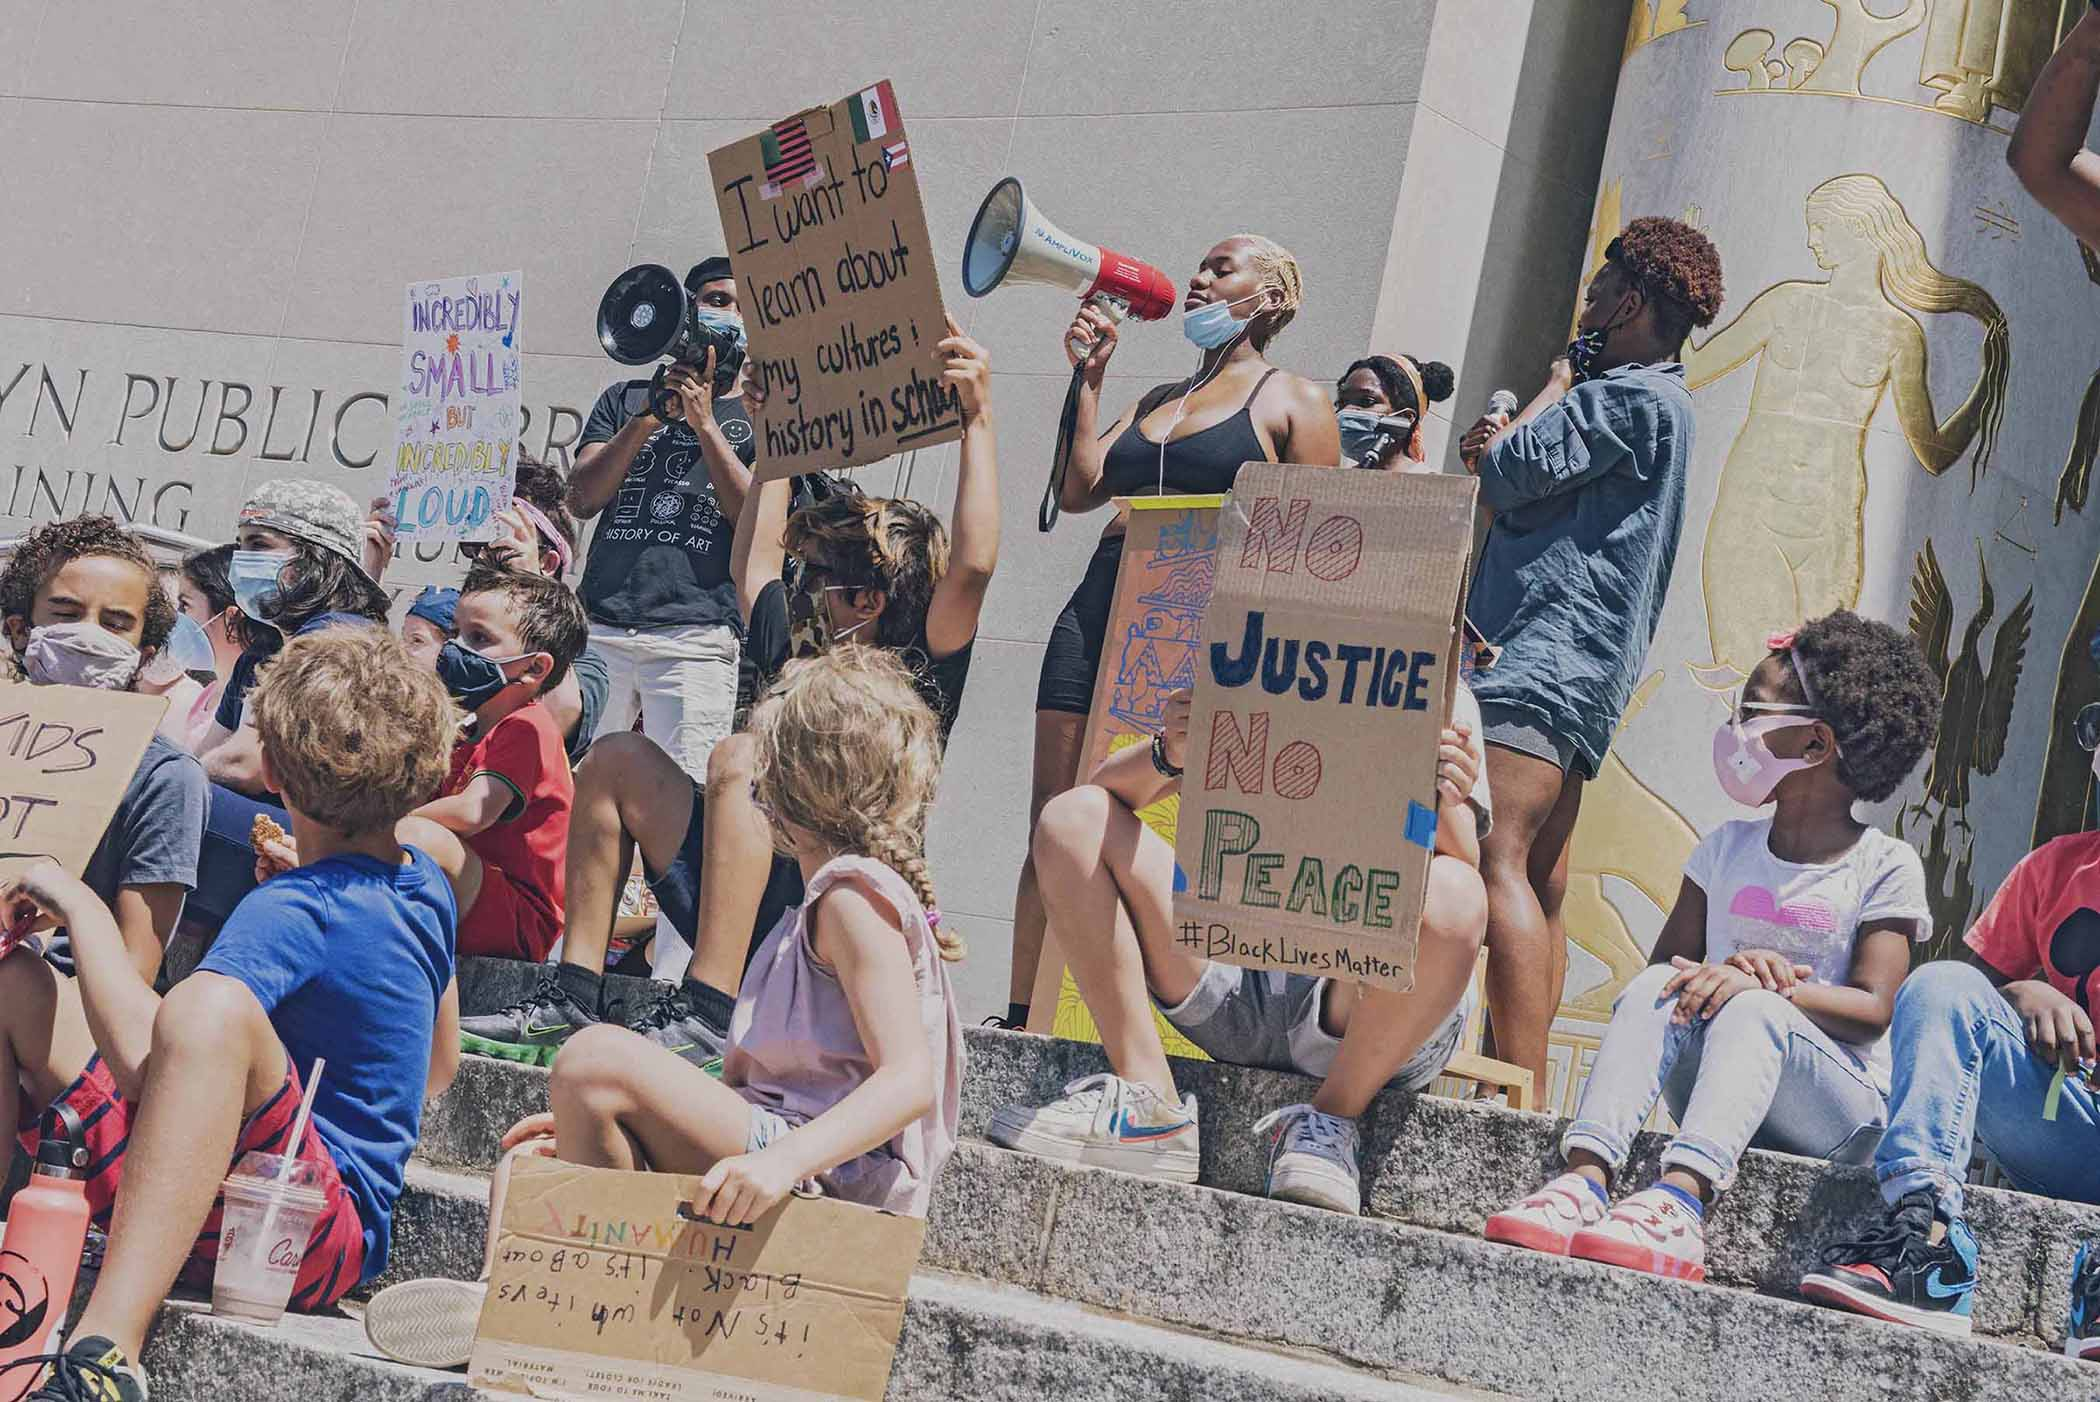 Warriors in the Garden are the youth-led collective at the forefront of civil rights protests